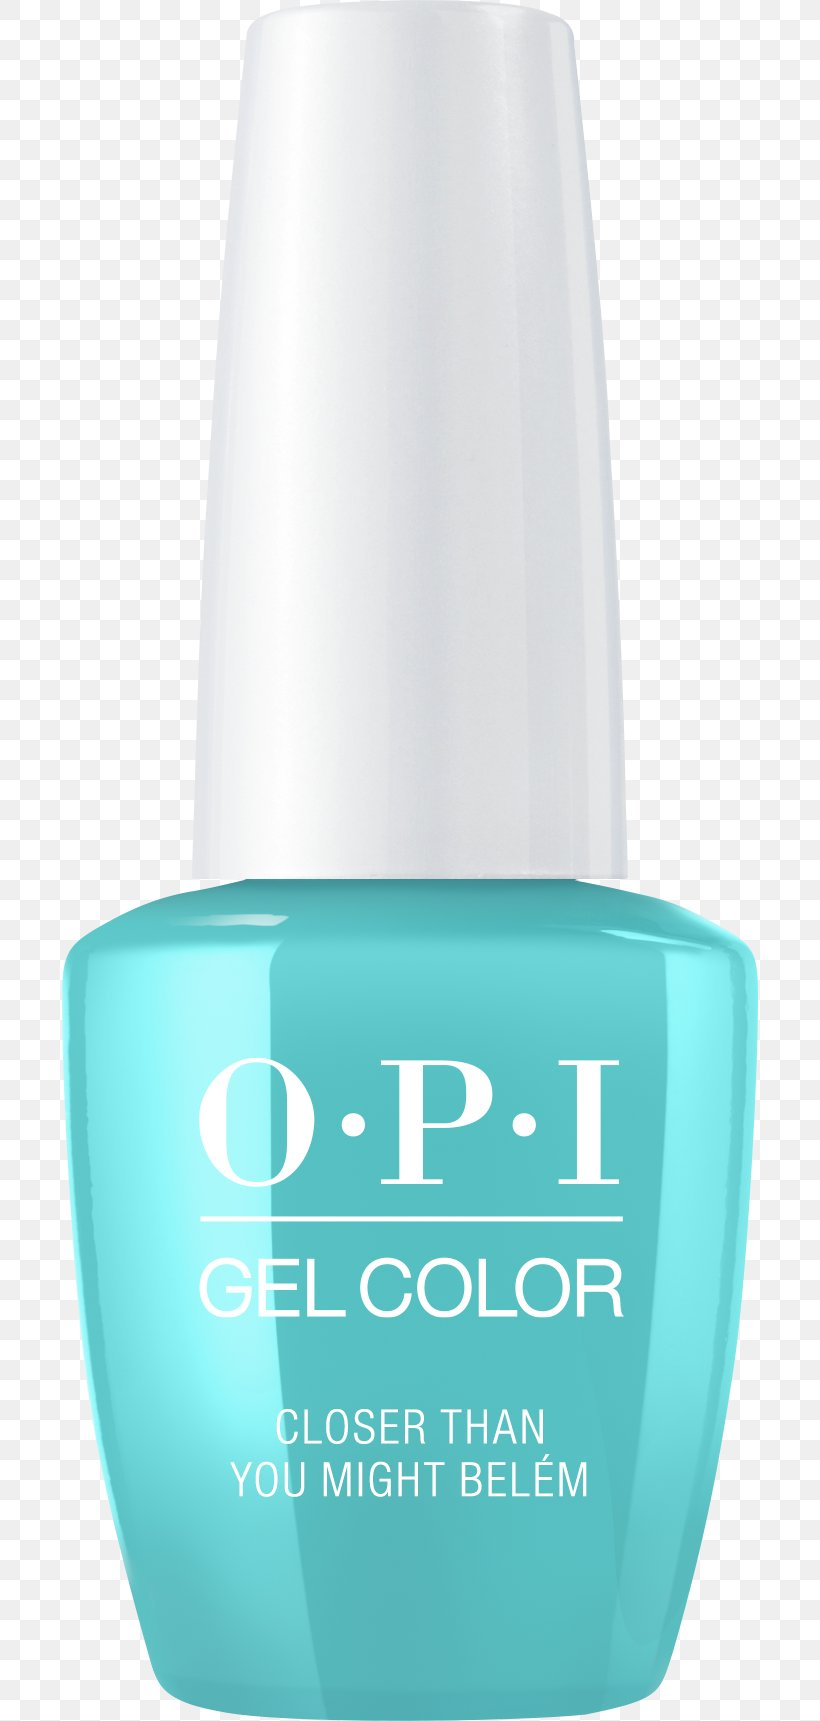 Opi Gelcolor Nail Polish Opi Products Gel Nails Png